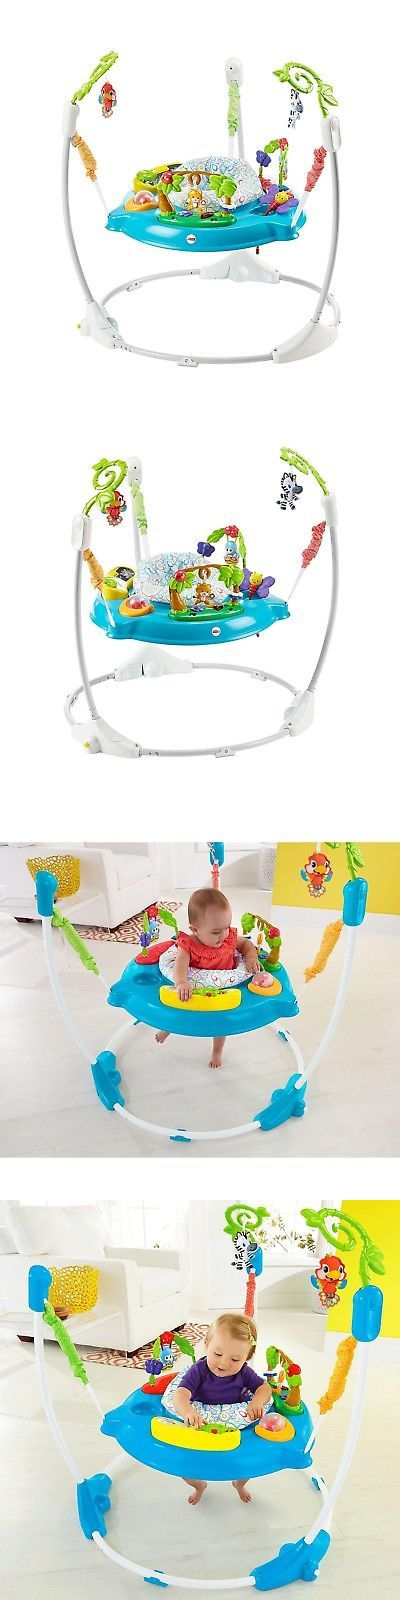 Baby Jumping Exercisers 117032: Fisher Price Shakira Musical Friends Jumperoo Baby Activity Bouncer Seat Jumper -> BUY IT NOW ONLY: $92.99 on eBay!